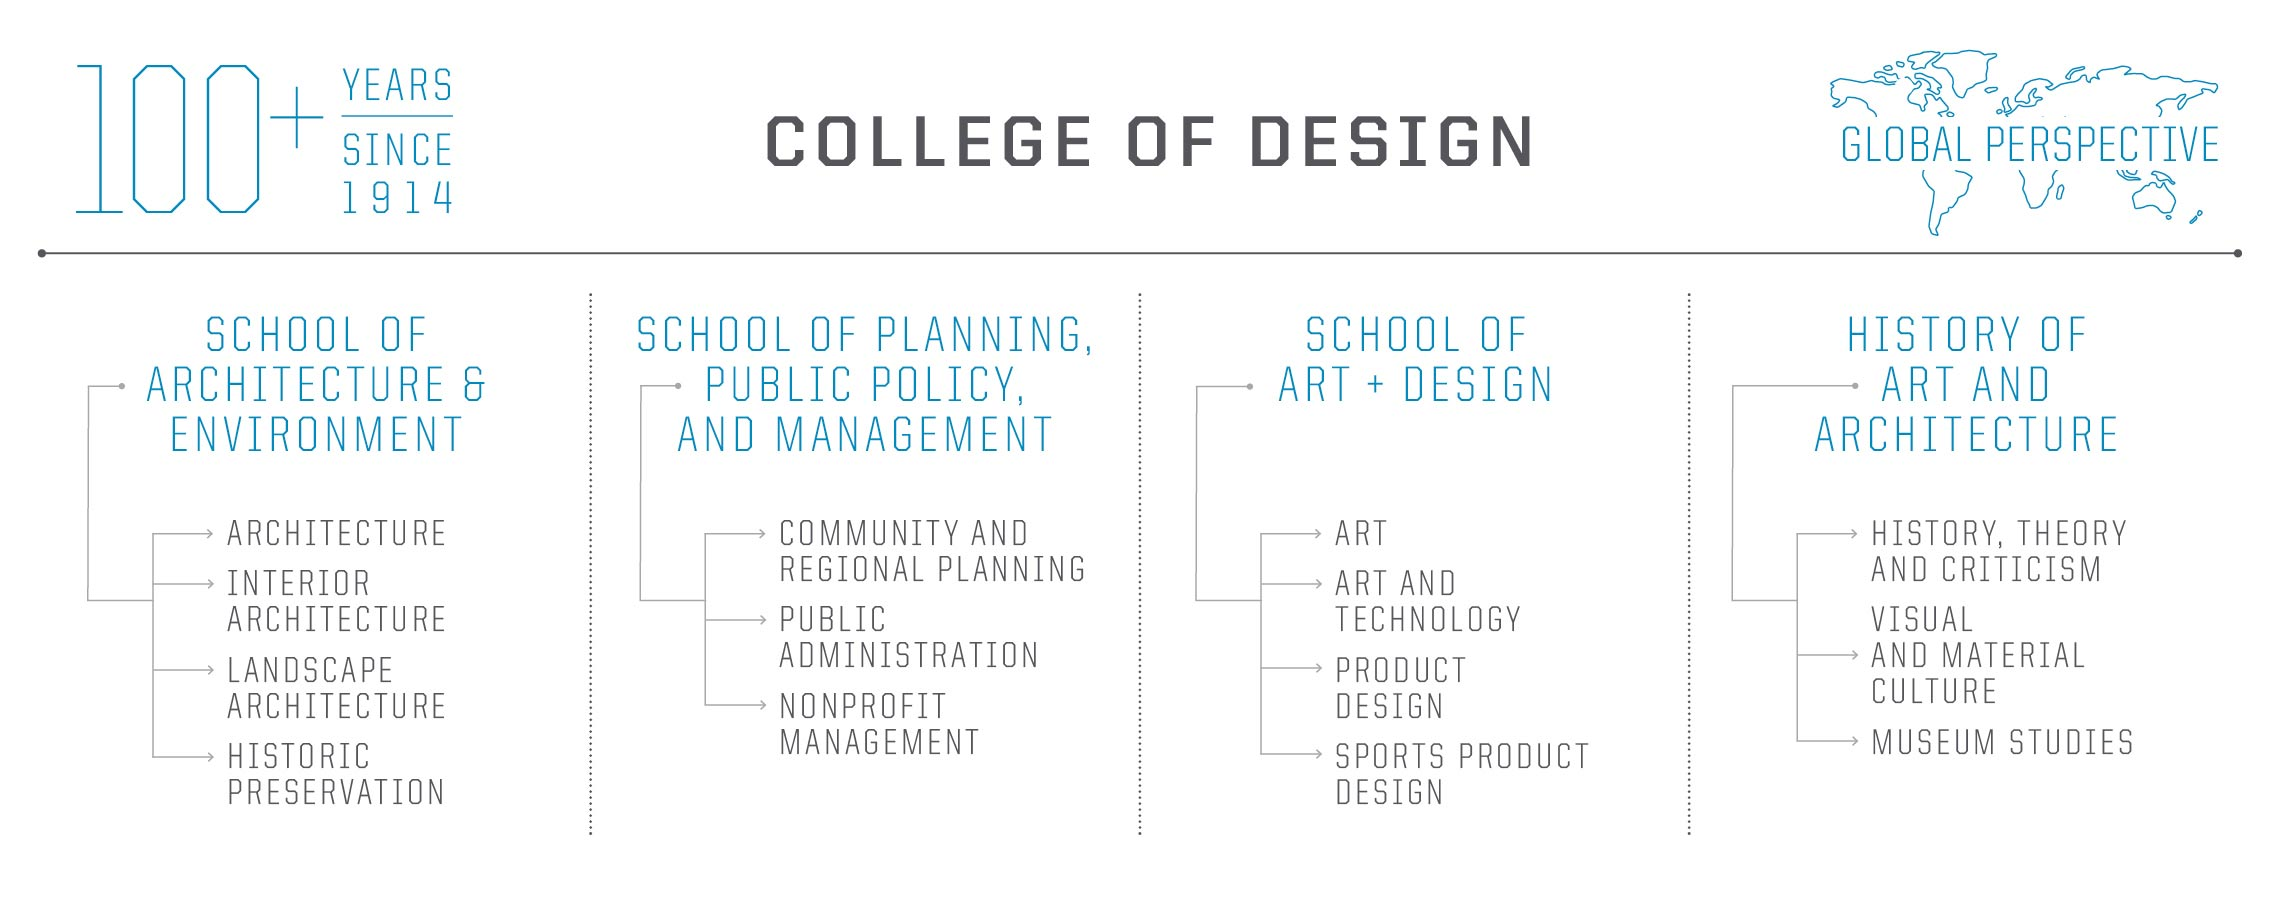 College of Design structure diagram